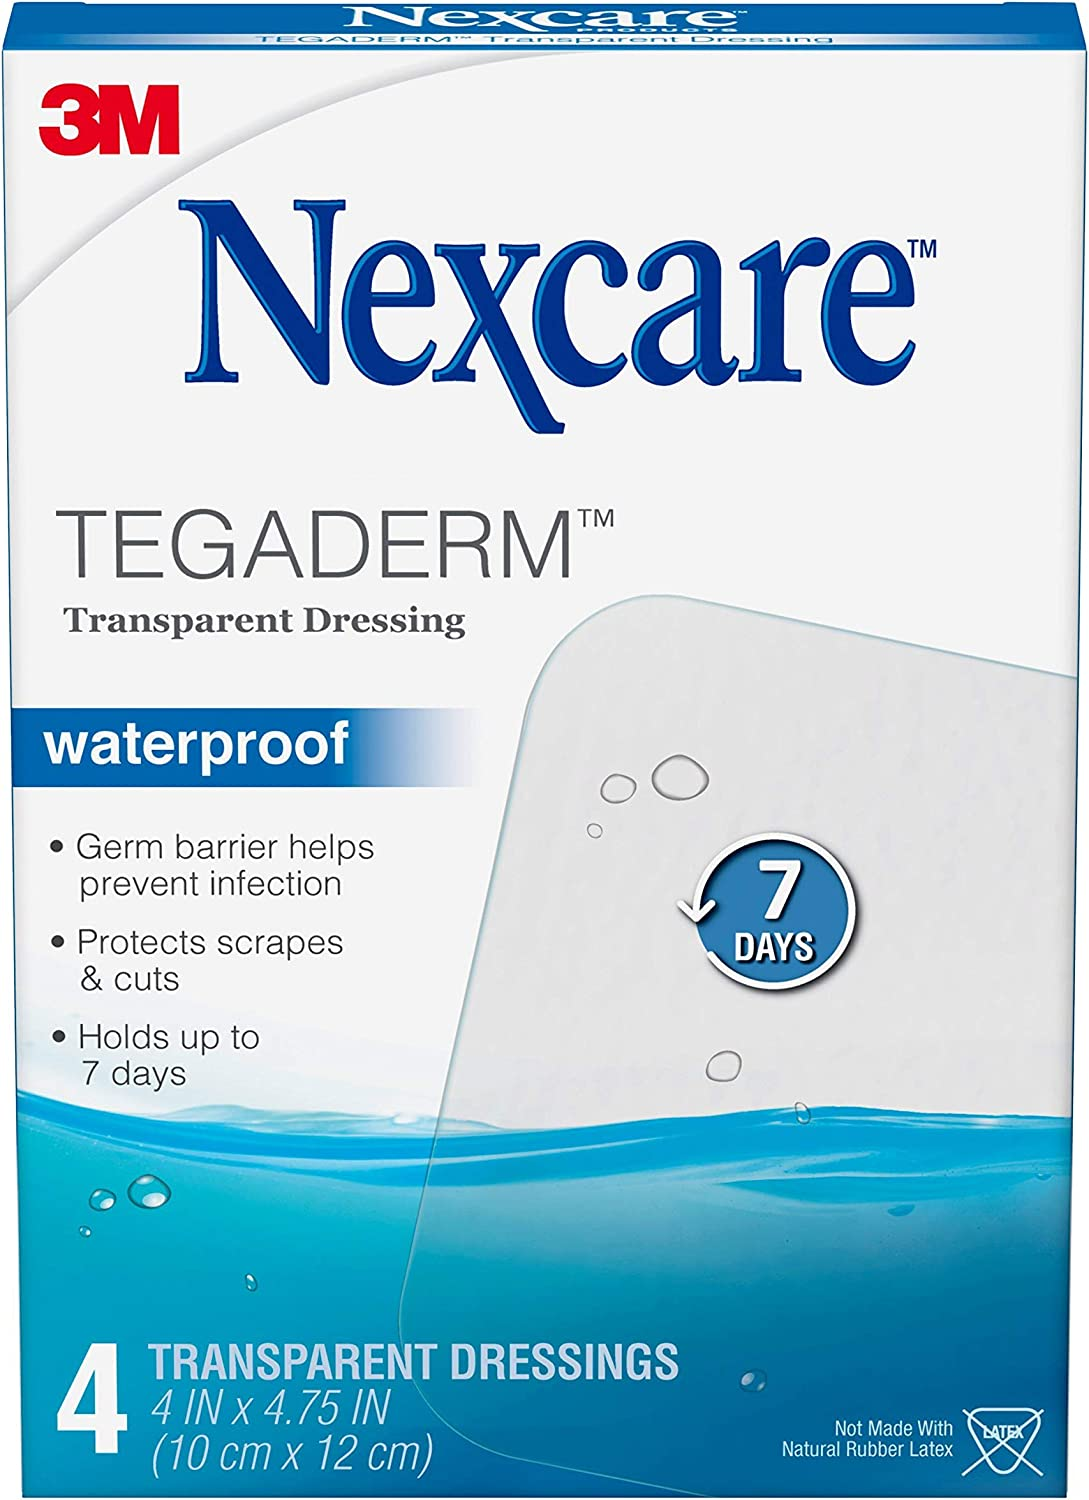 Nexcare tegaderm Waterproof Transparent Dressing 8Count Pack of 3 2-3//8 x 2-3//4